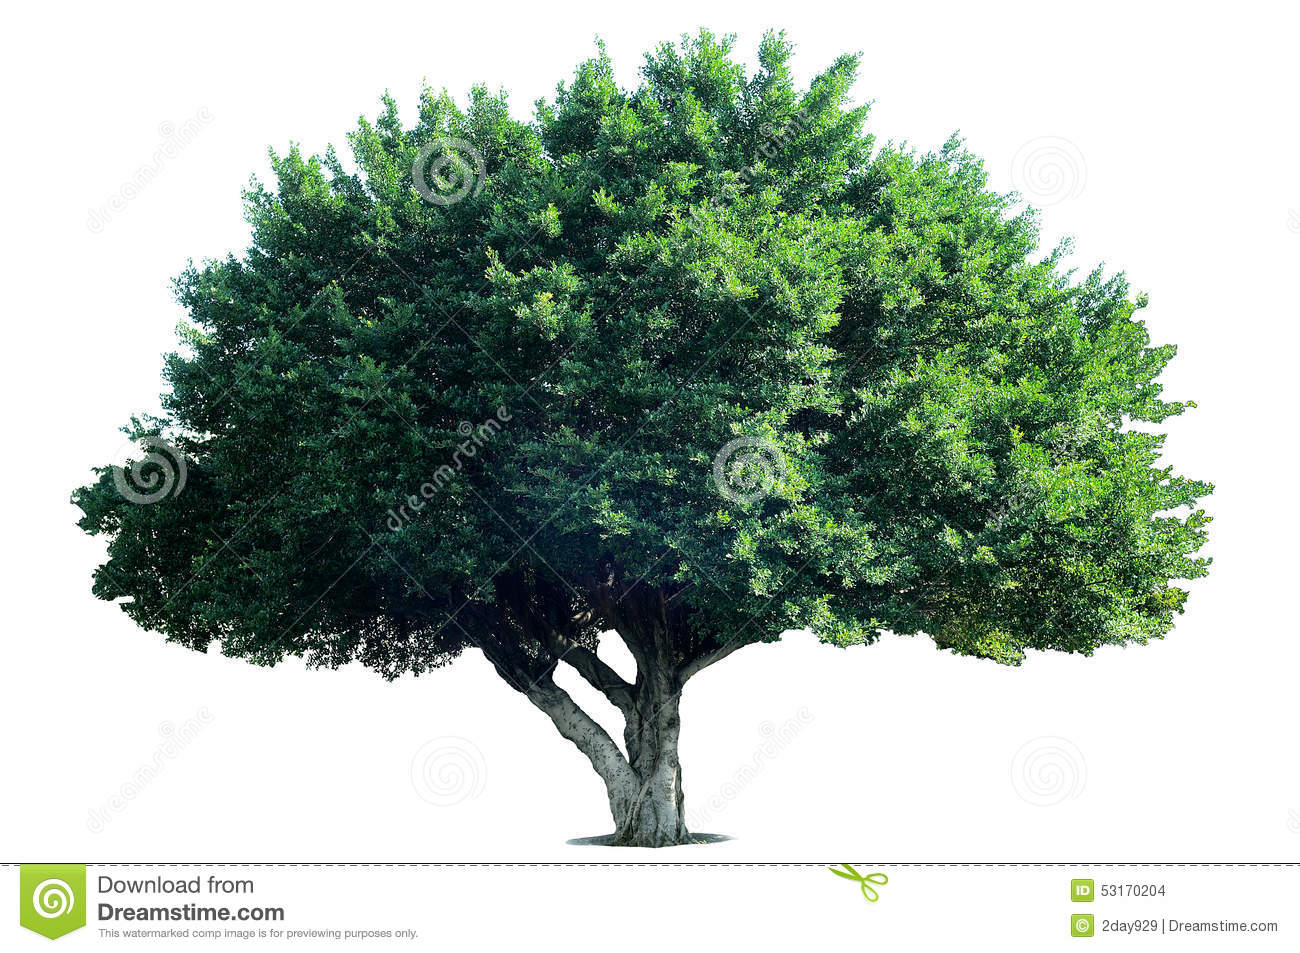 Royalty-Free Stock Photo - Wide Tree PNG